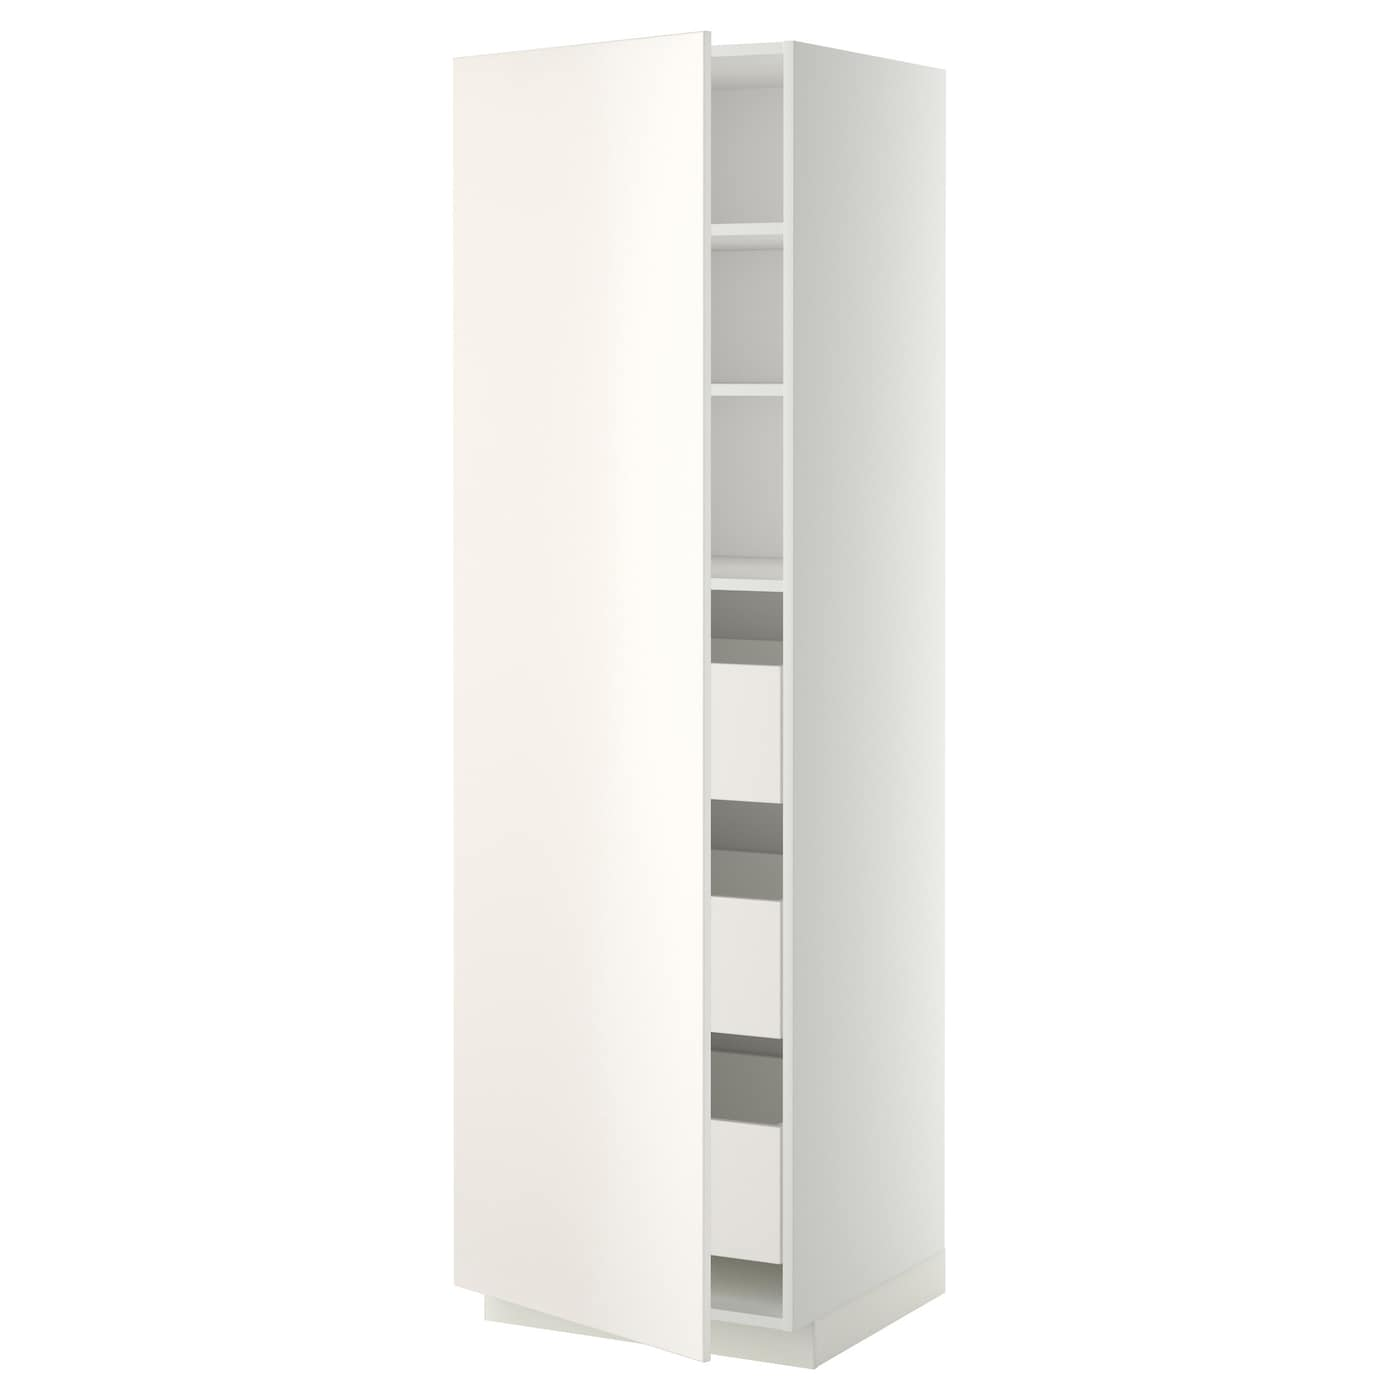 metod maximera high cabinet with drawers white veddinge white 60 x 60 x 200 cm ikea. Black Bedroom Furniture Sets. Home Design Ideas